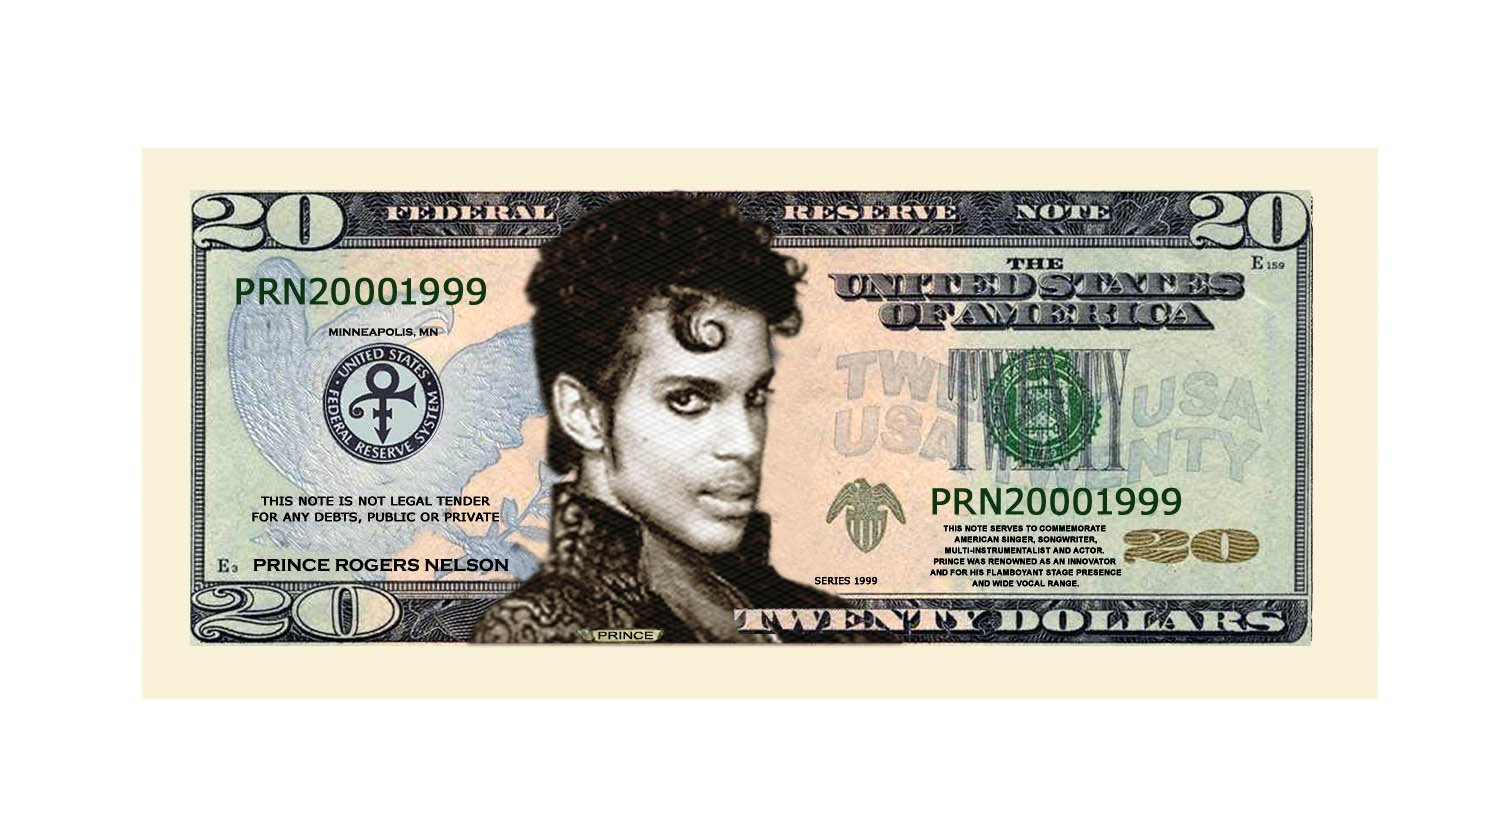 American Art Classics Prince $20.00 Limited Edition Novelty Twenty Dollar Collectible Bills - Pack of 100 - Best Gift Or Keepsake for Lovers of Prince by American Art Classics (Image #1)